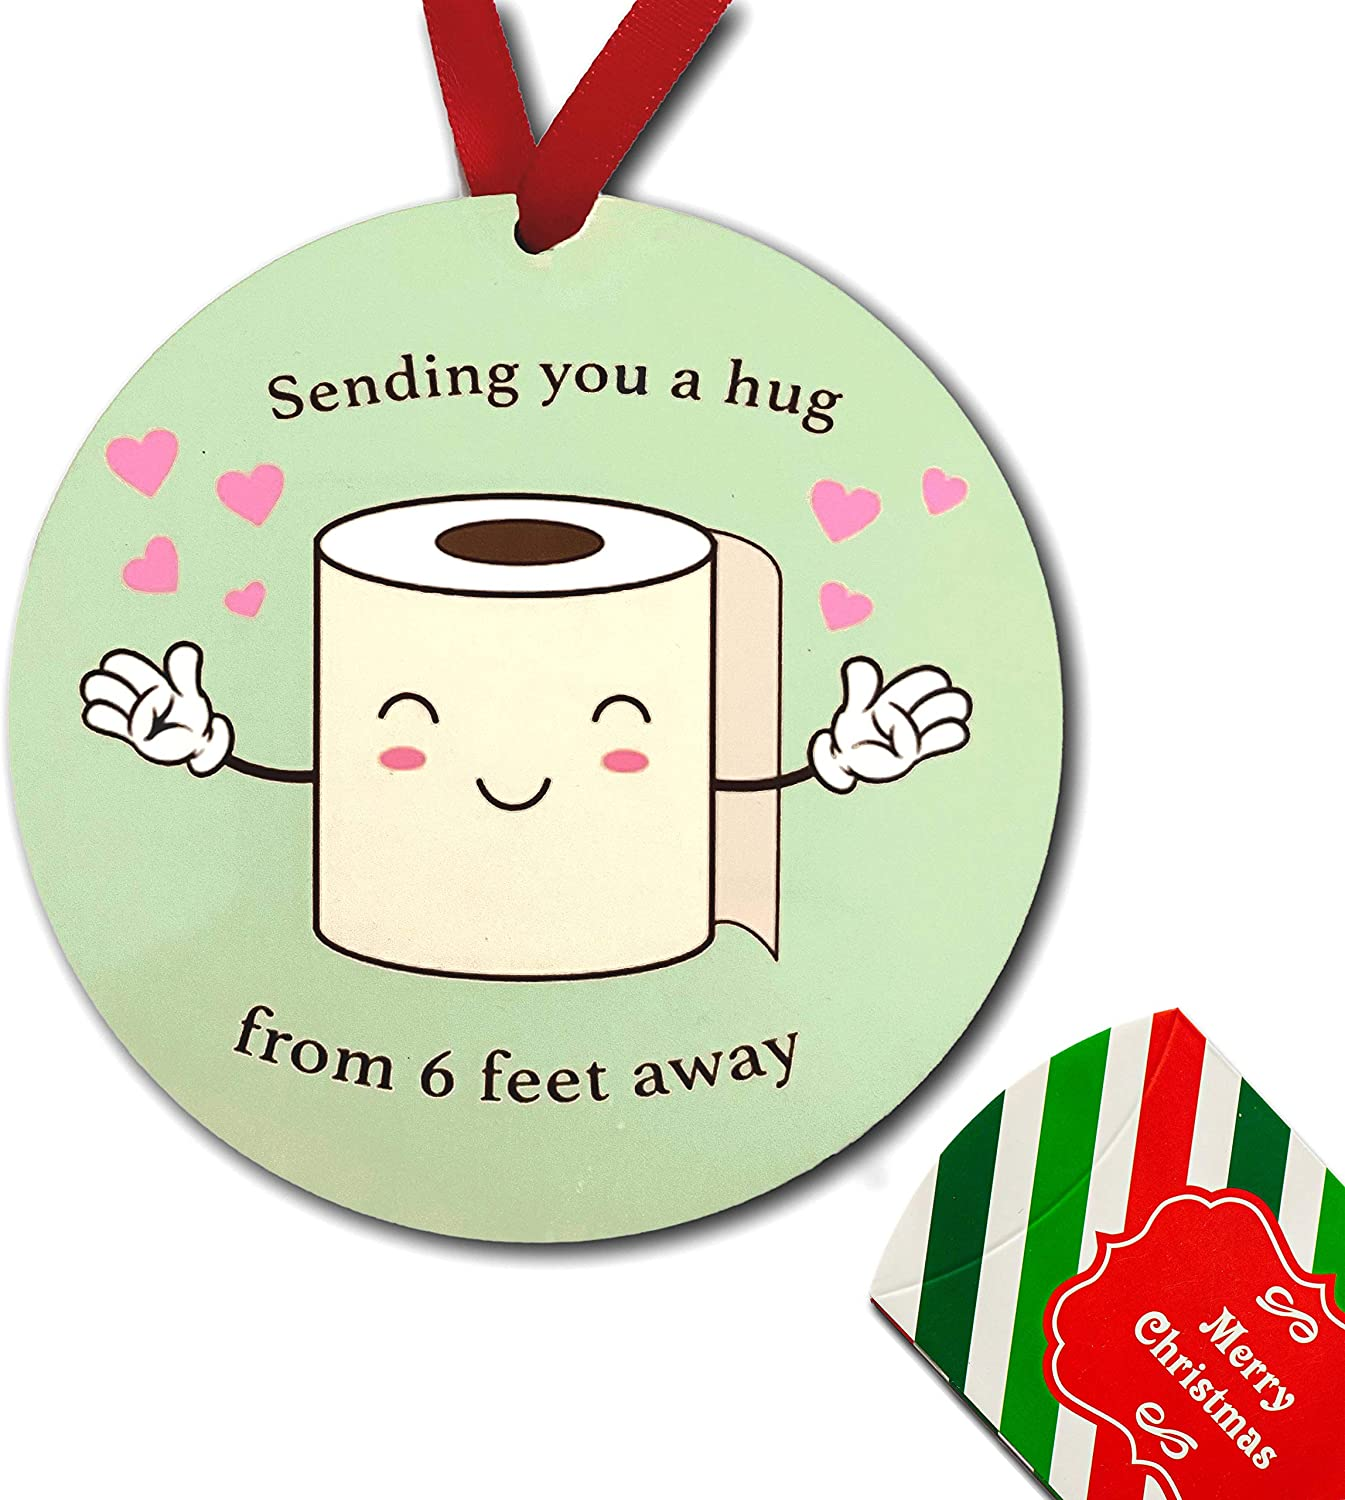 2020 Christmas Ornaments Toilet Paper Quarantine Sending You a Hug from 6 feet Away Ornament Friends Social Distance Covid Gift Xmas Tree Décor Holiday Family Christmas Tree Decorations 1PC